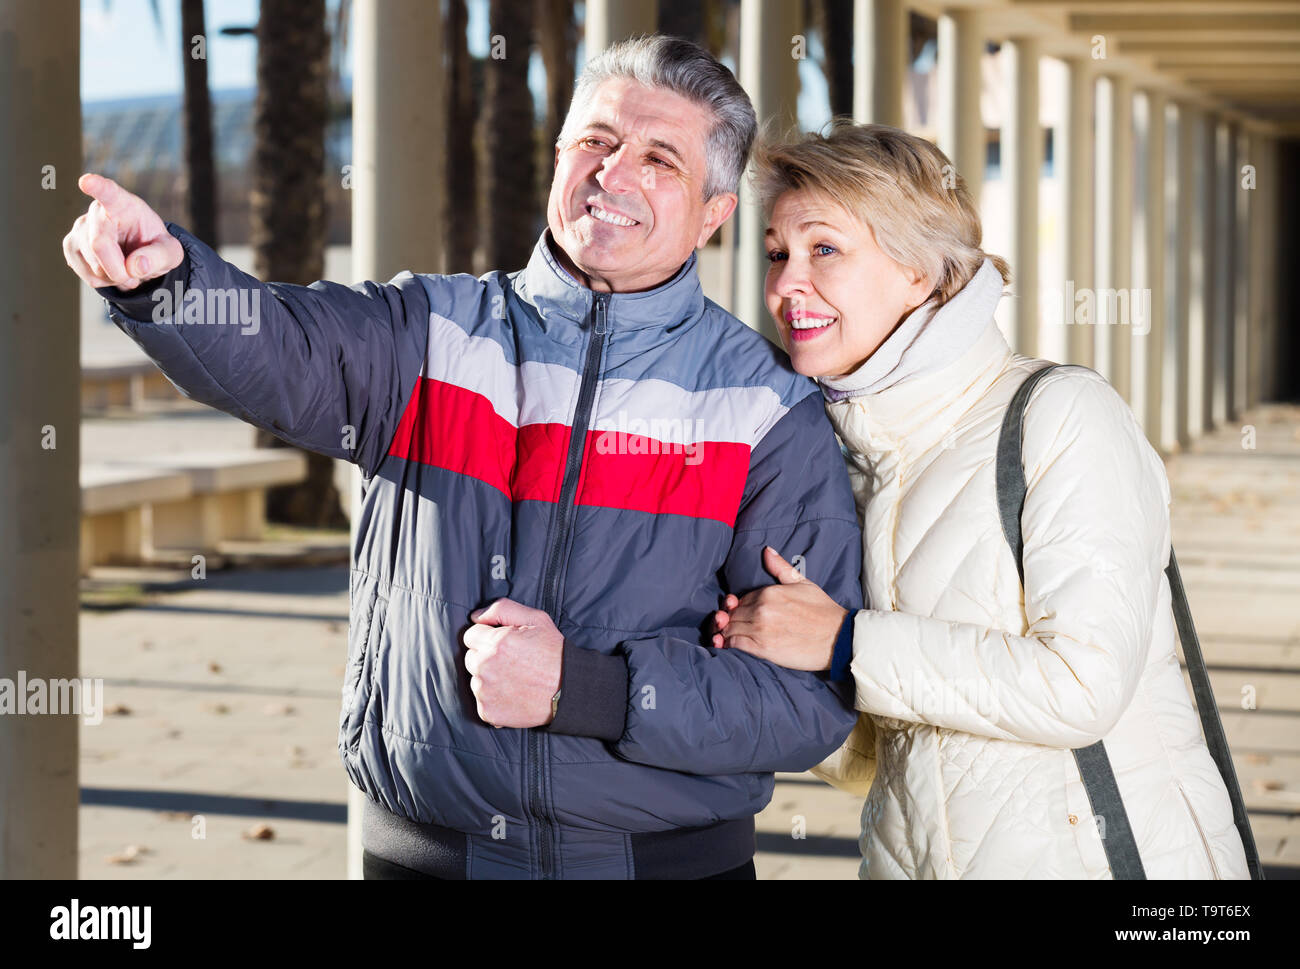 Mature married couple walk and husband points to wife to something interesting - Stock Image